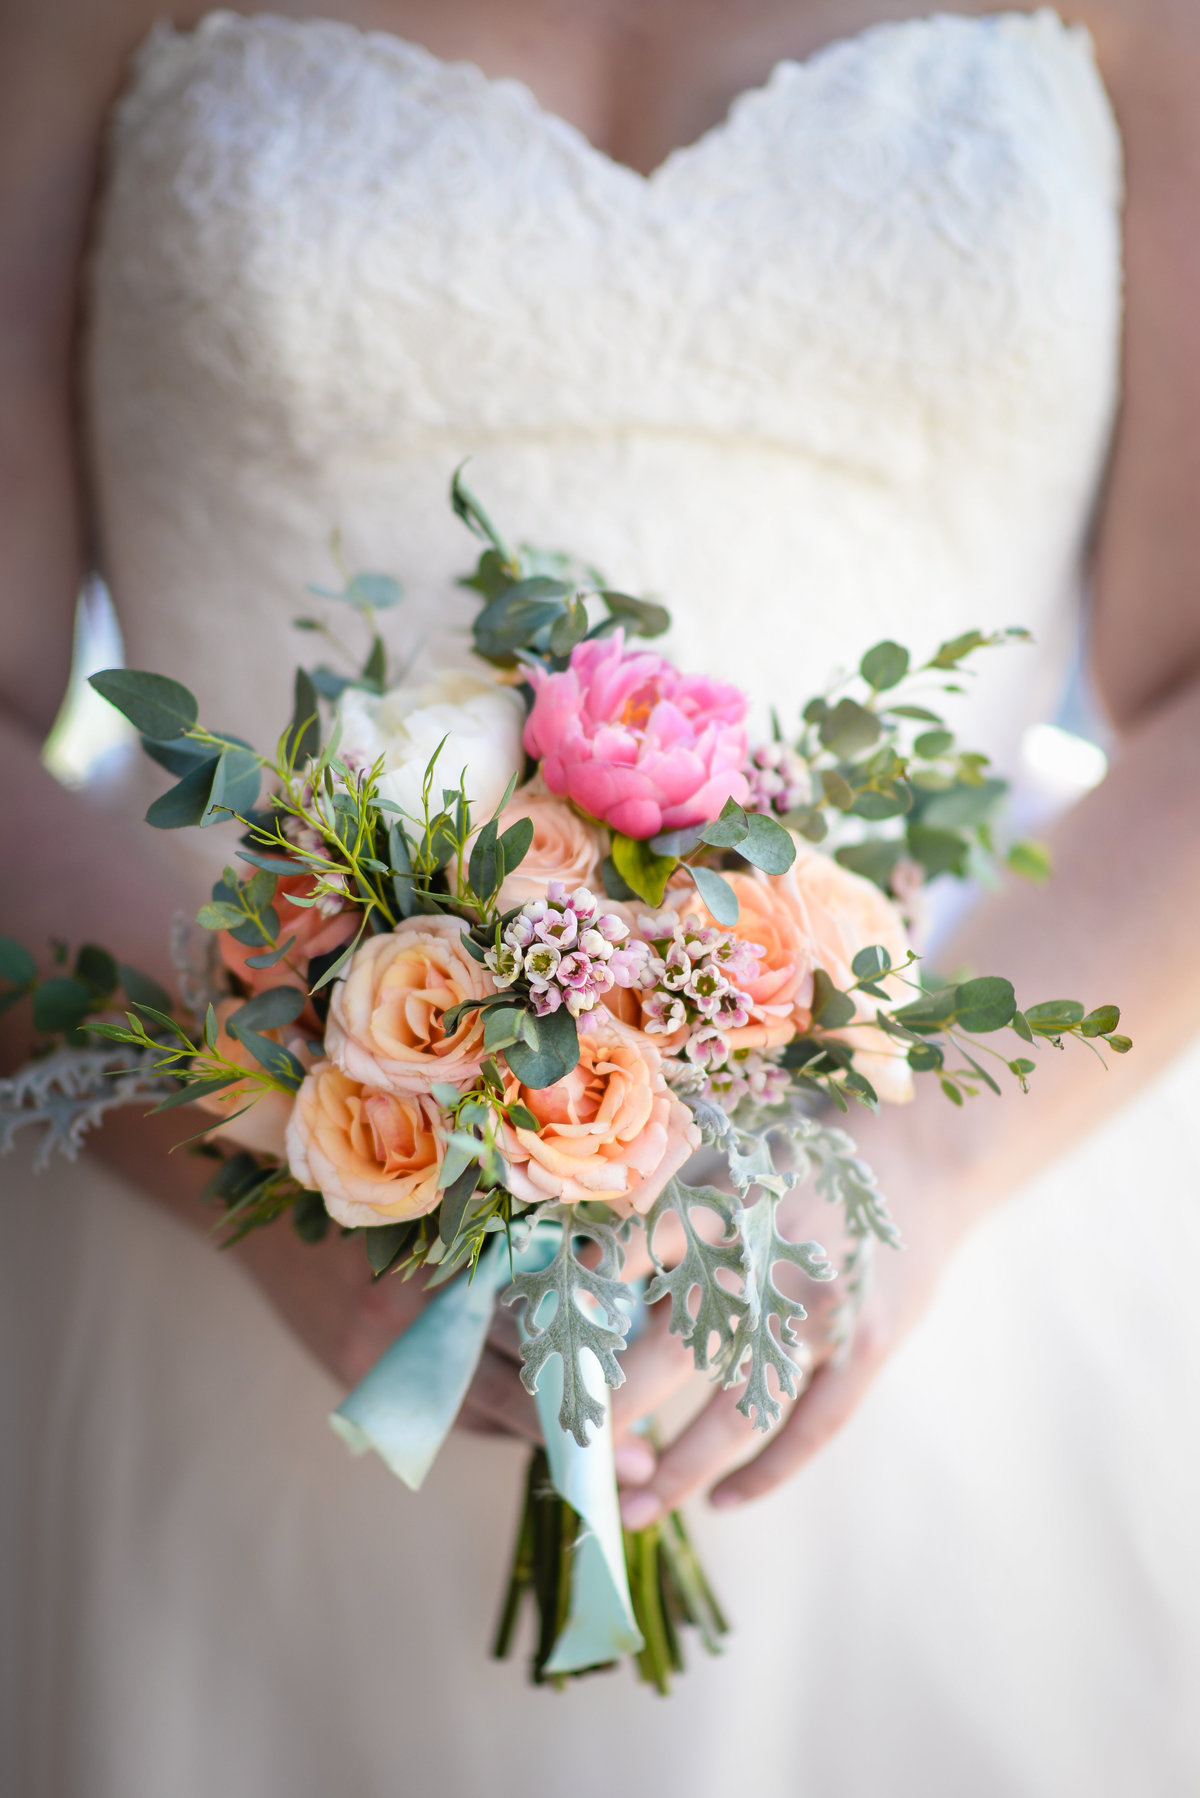 Beautiful NOLA Wedding Photography: Brides bouquet with pink, peach and green by Leaf + Petal at Race & Religious